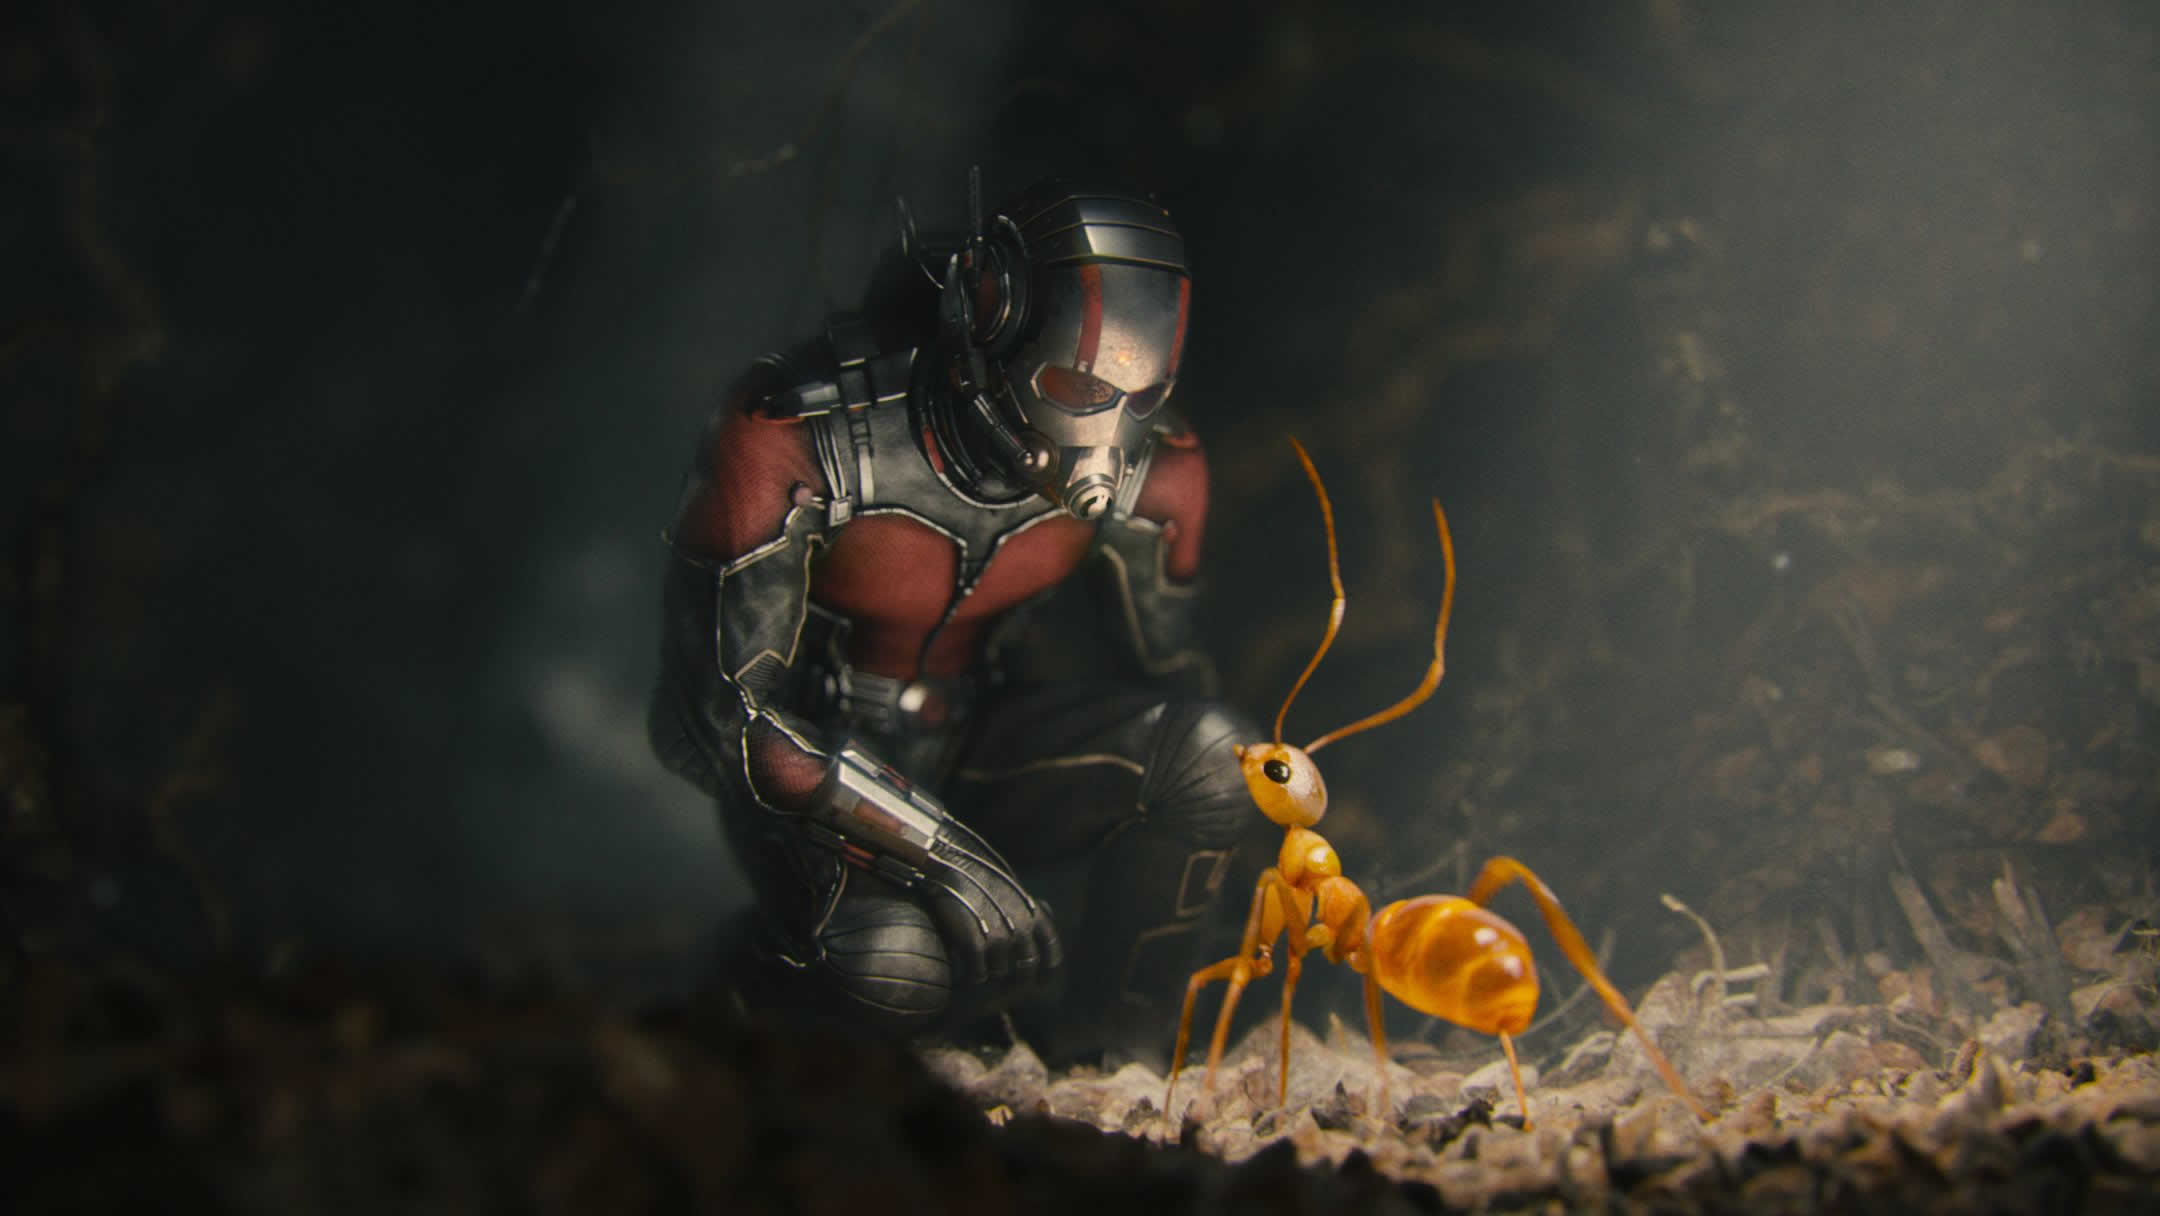 Ant-Man HQ wallpapers